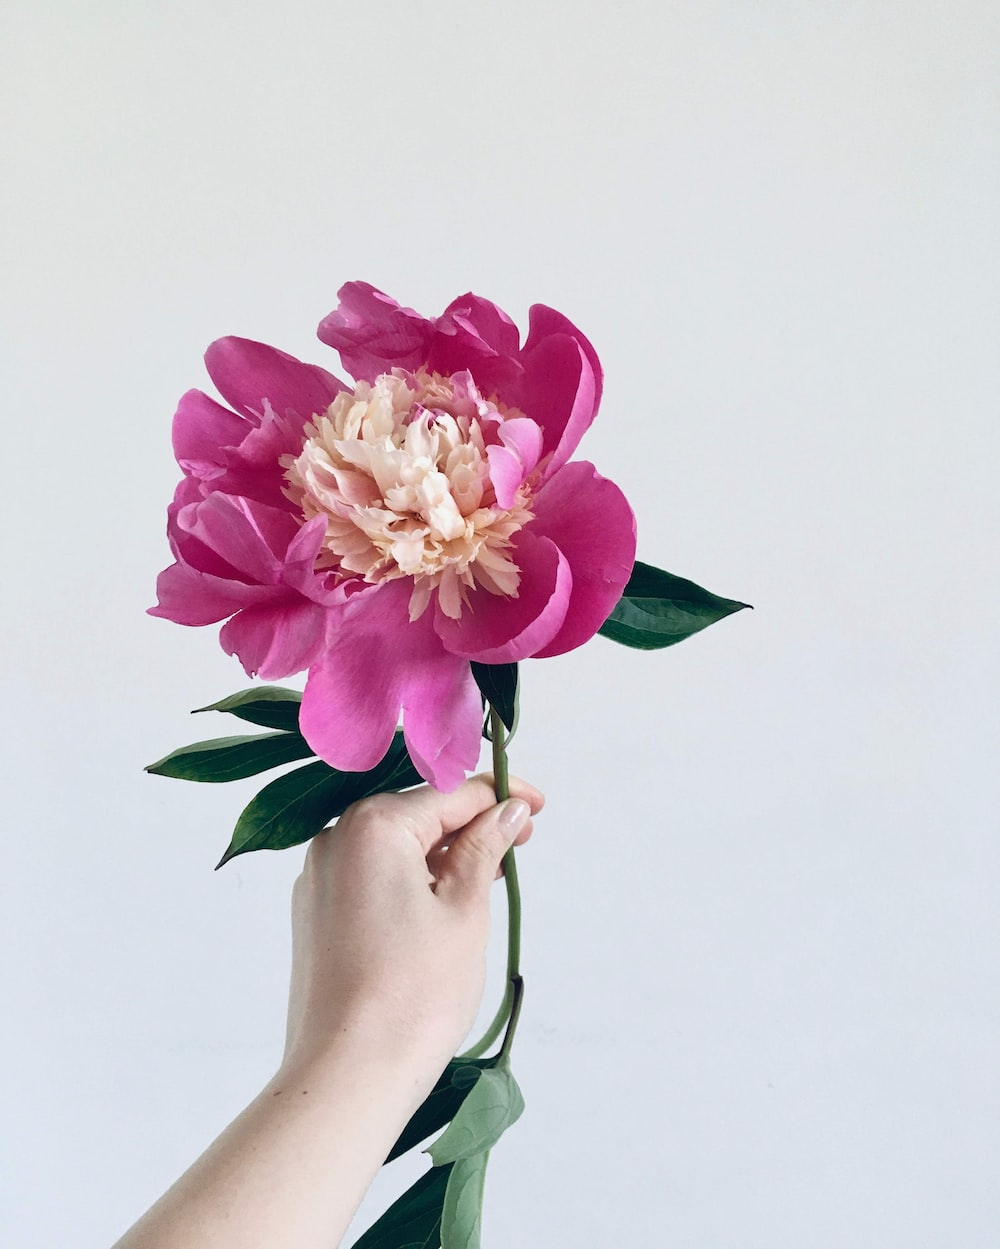 person holding pink and white flowers